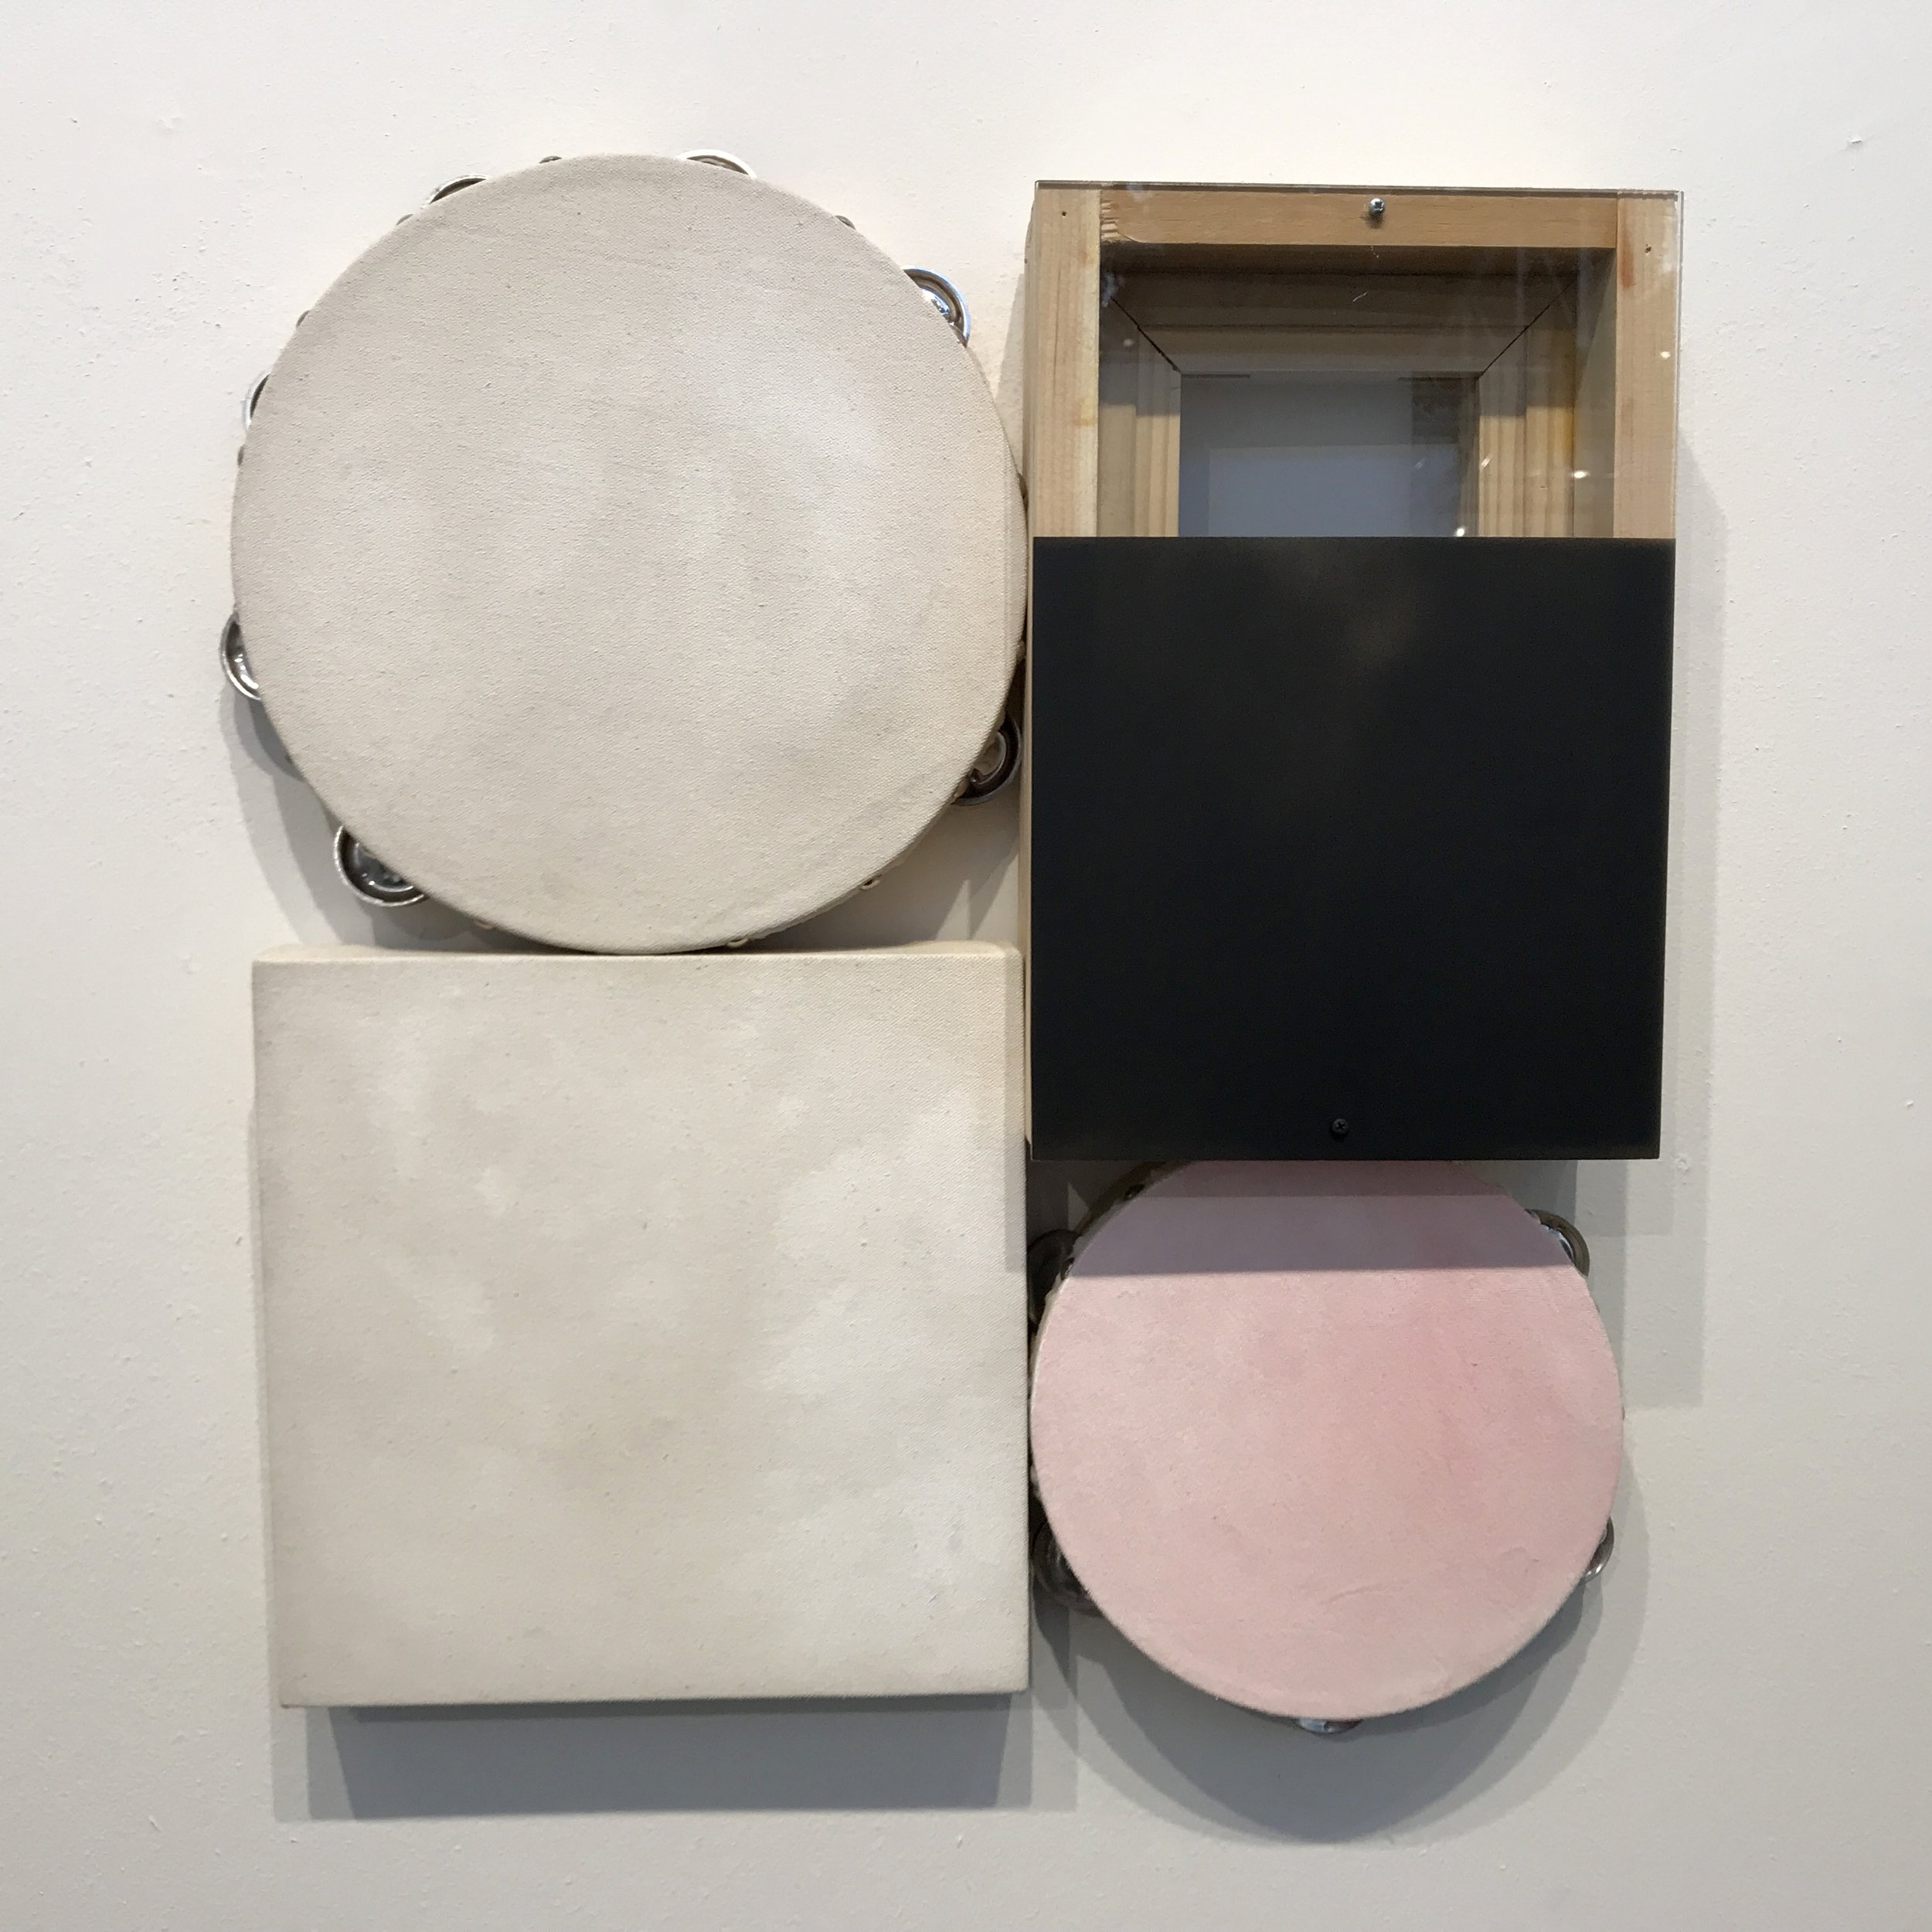 I know I was attracted this day to circles and pink. This piece feels just right to me. At Fog.